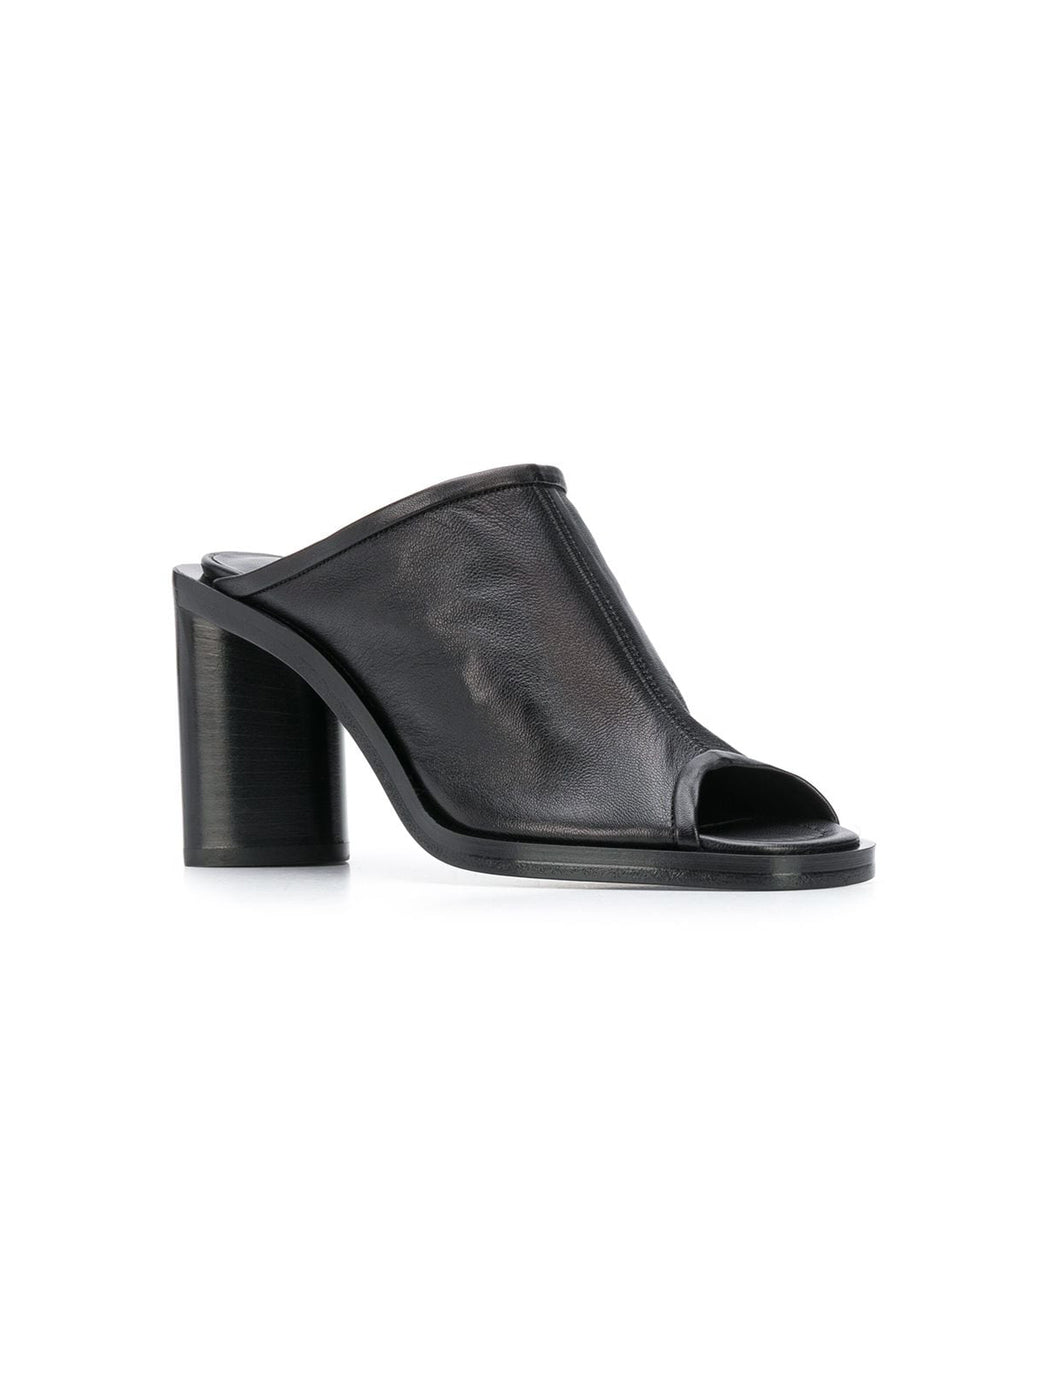 Bernis Leather Mule Heel